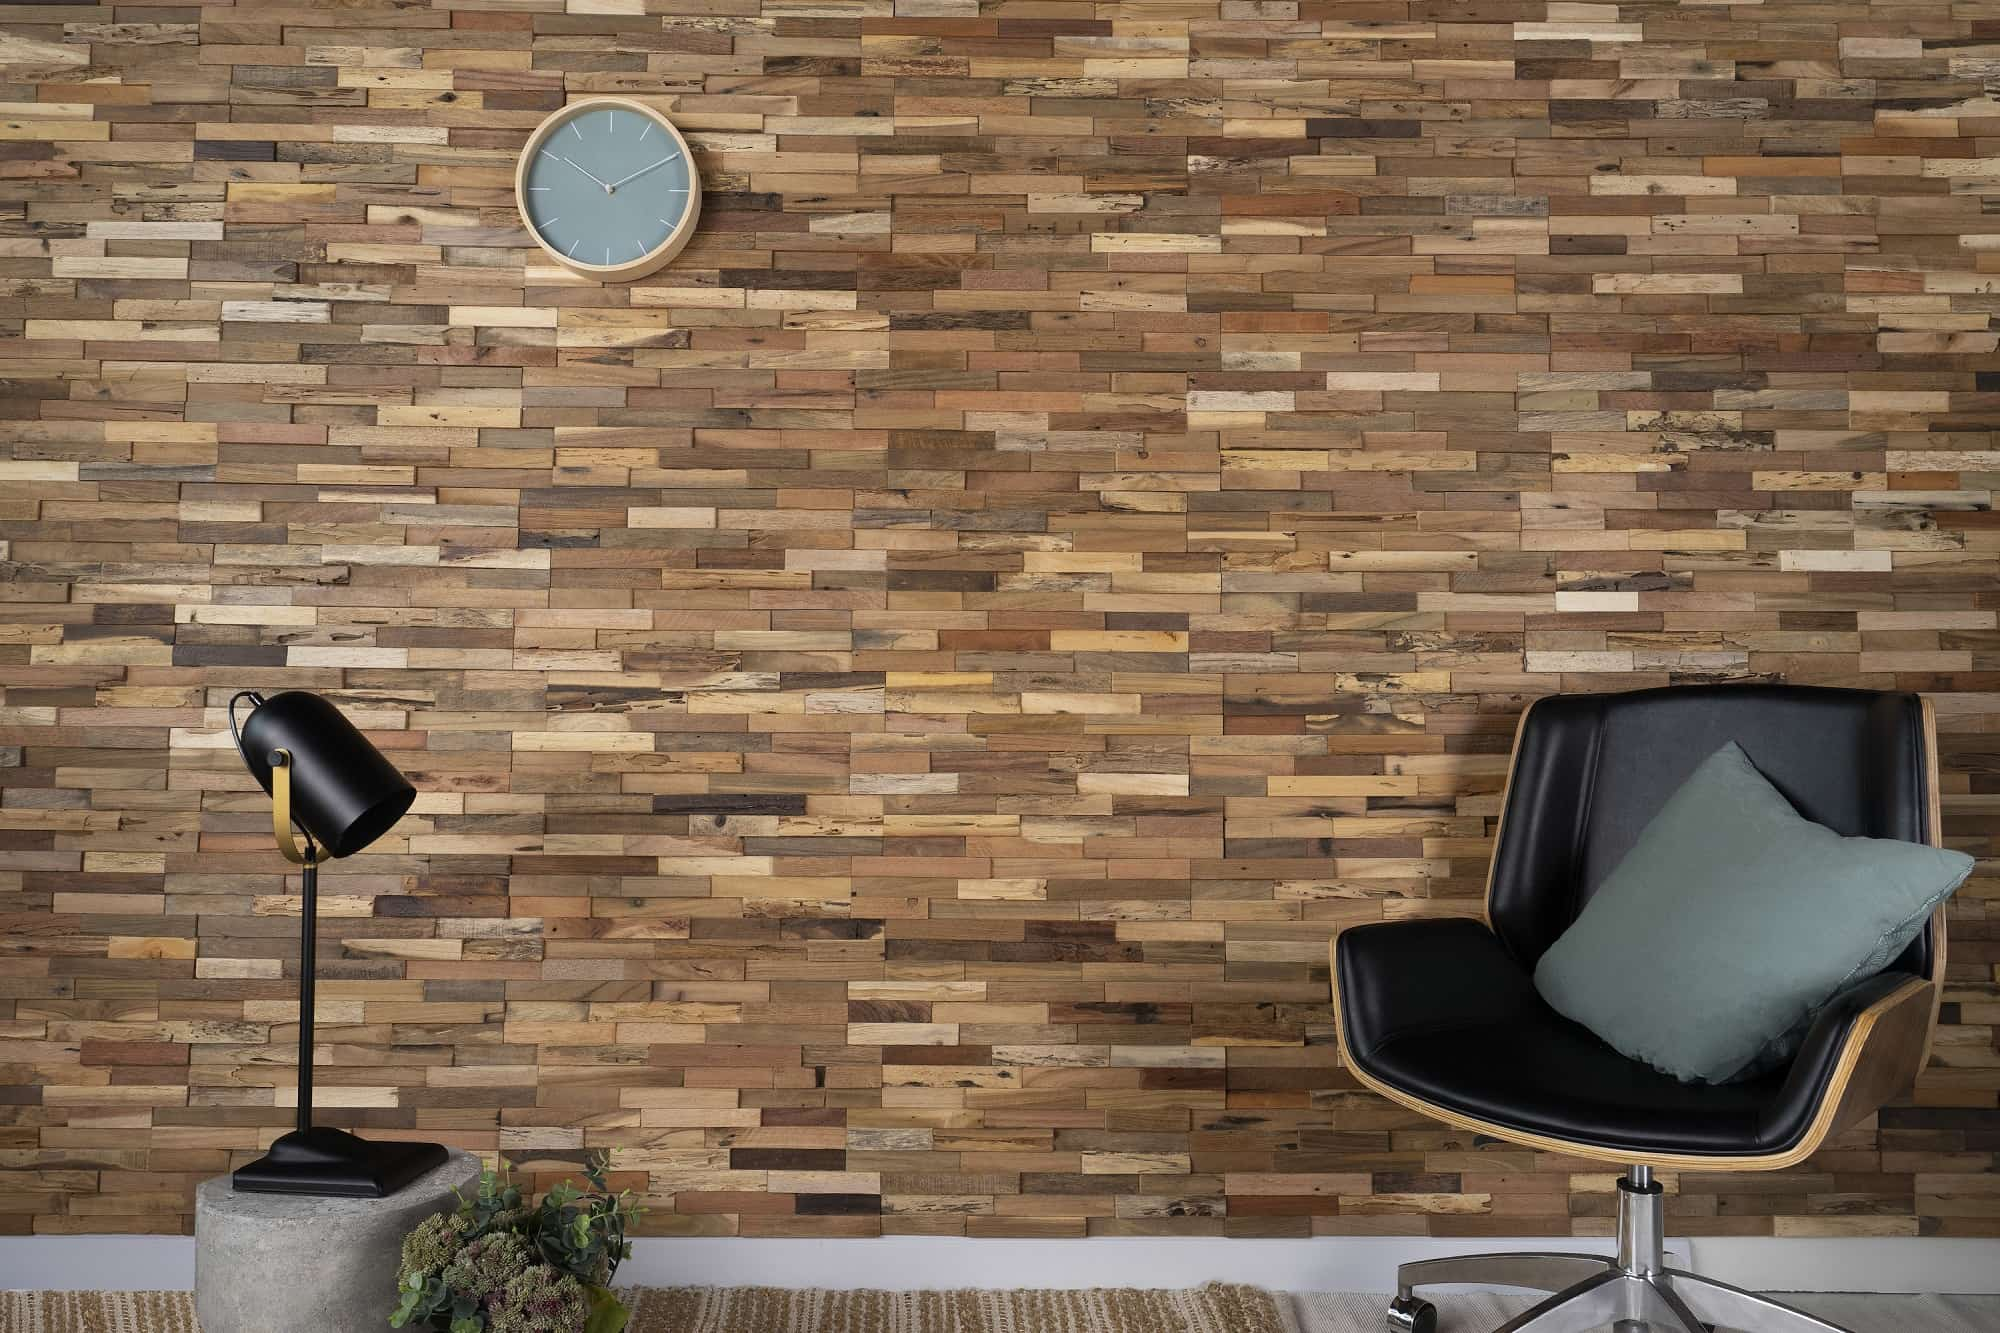 Reclaimed Wood Panels: An Eco-Friendly Way to Enhance Your Home Decor. Nice solid planked accent wall and the leisure chair